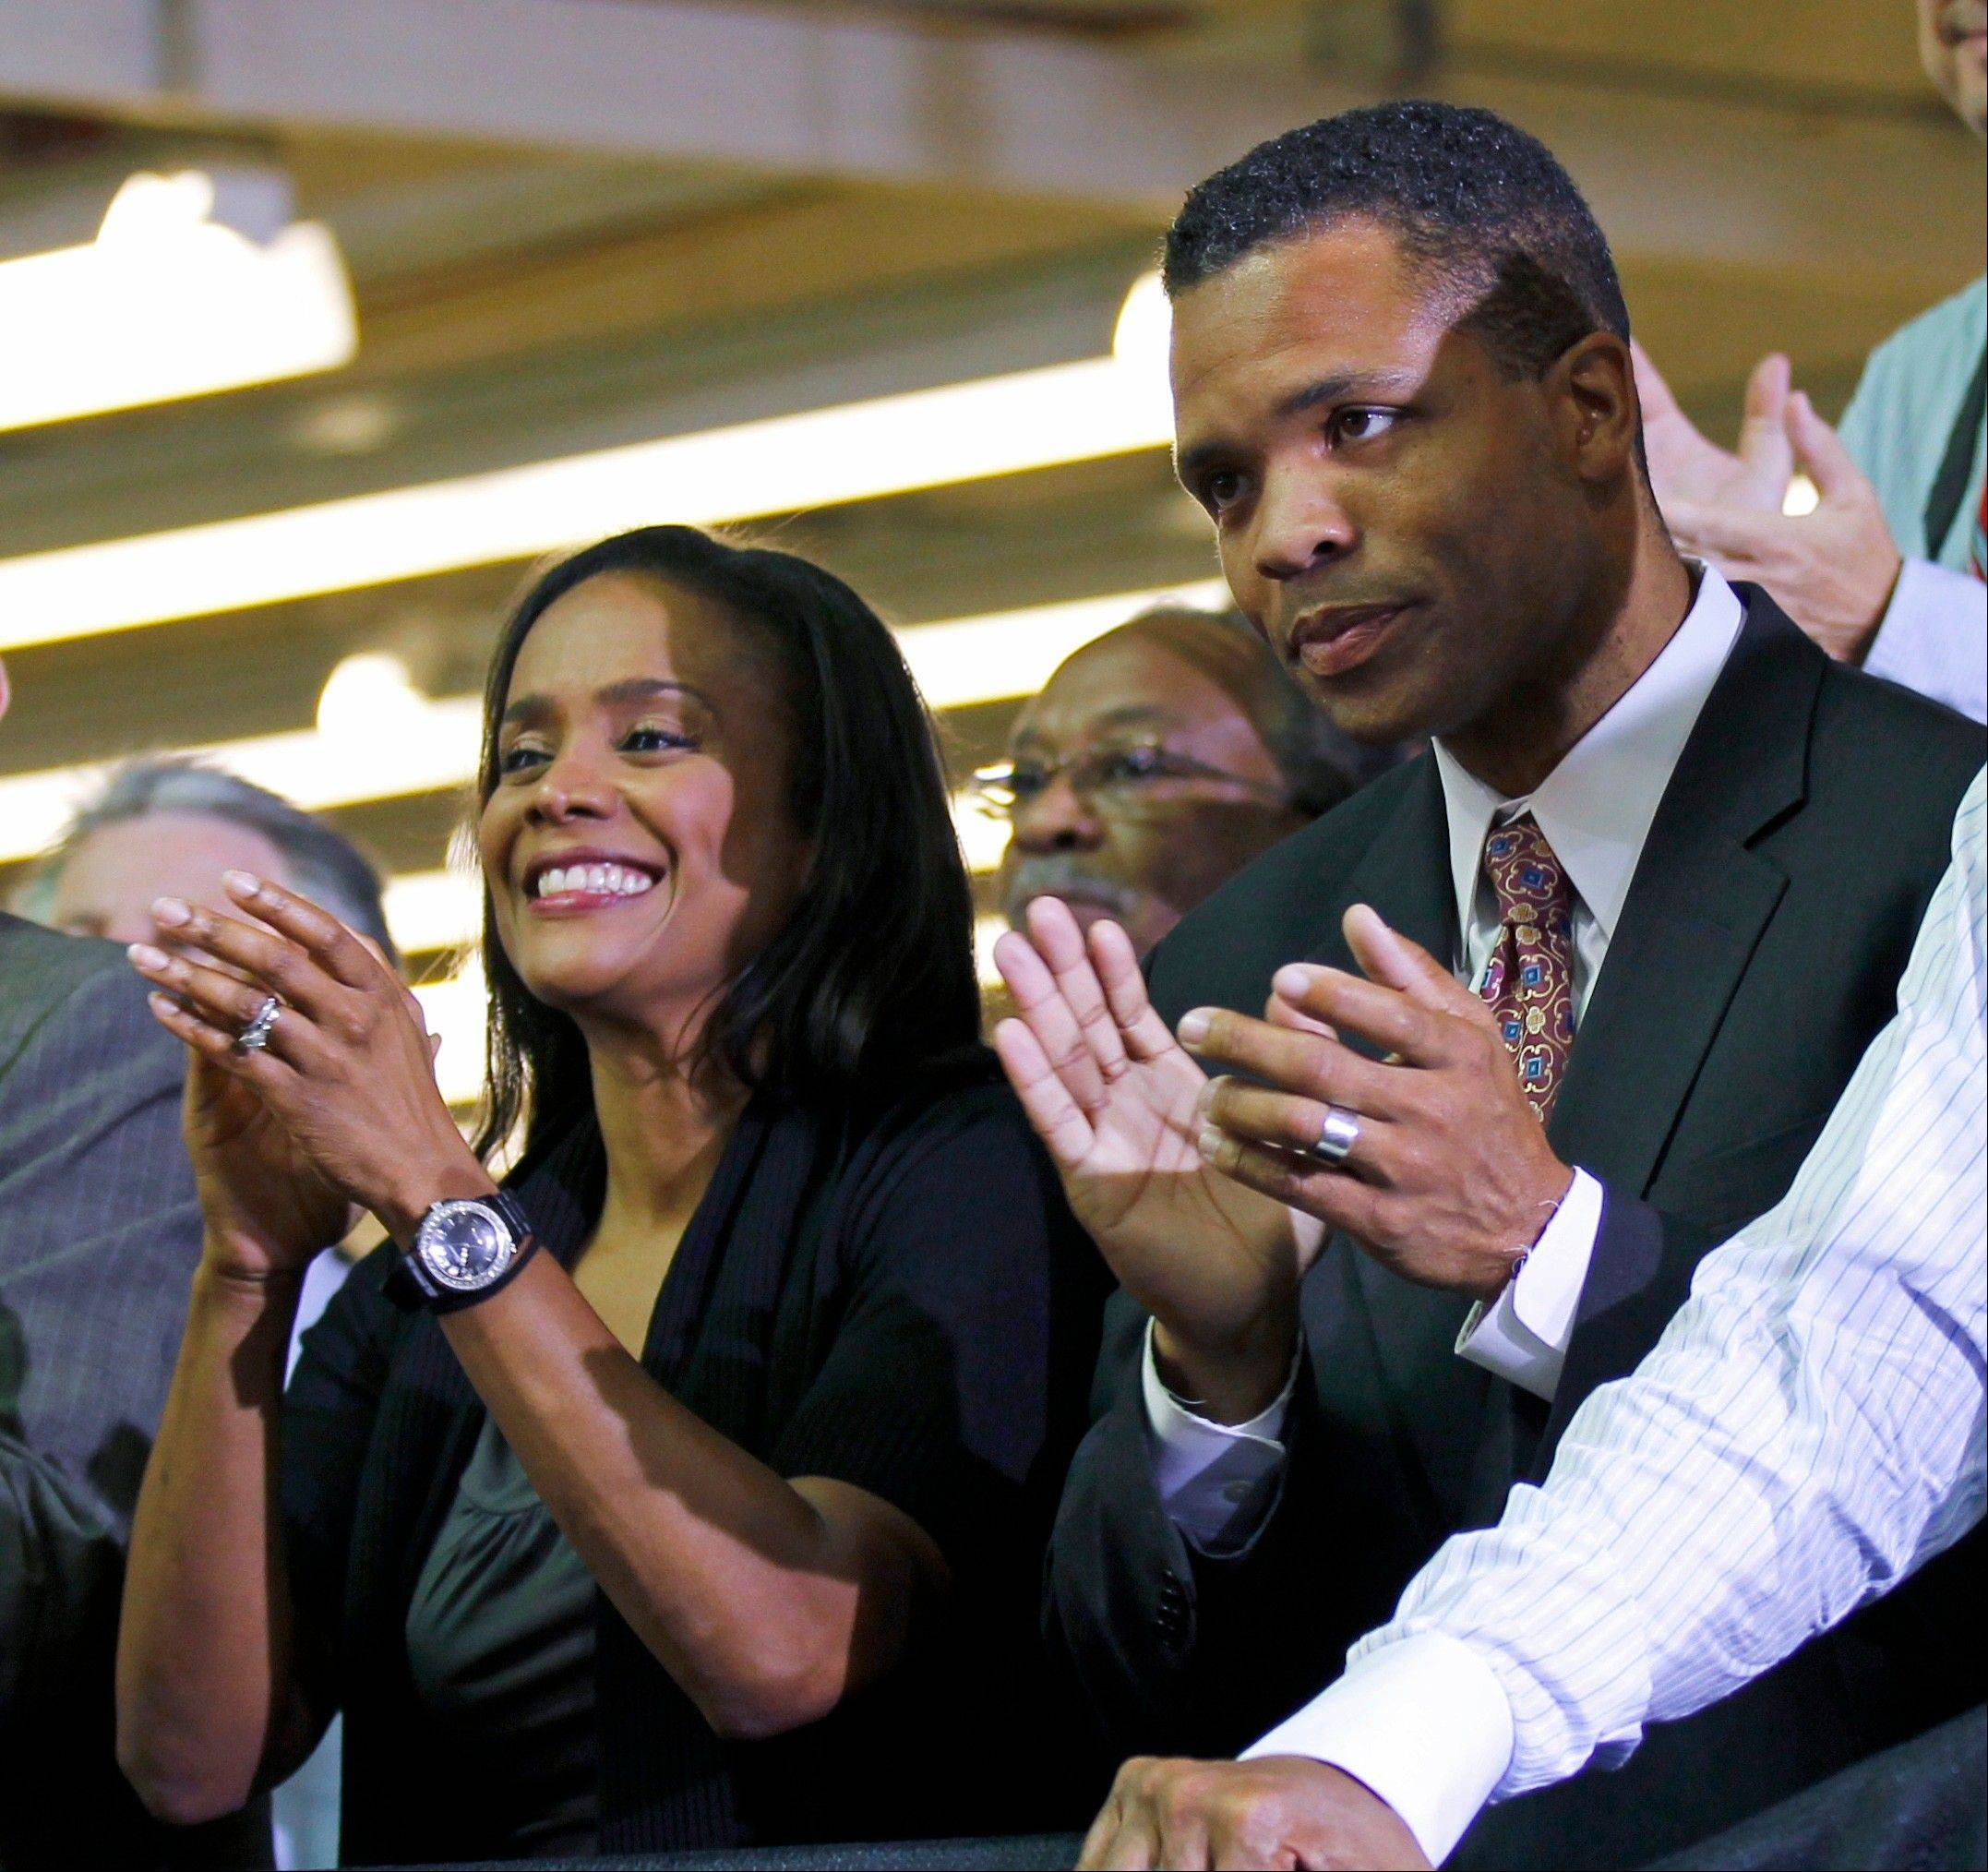 Then-Rep. Jesse Jackson Jr. right, and his wife, Sandi Jackson, applaud as President Barack Obama is introduced at the Ford assembly plant in Chicago. Sandi Jackson has resigned from the Chicago City Council. Her husband resigned from Congress in November.